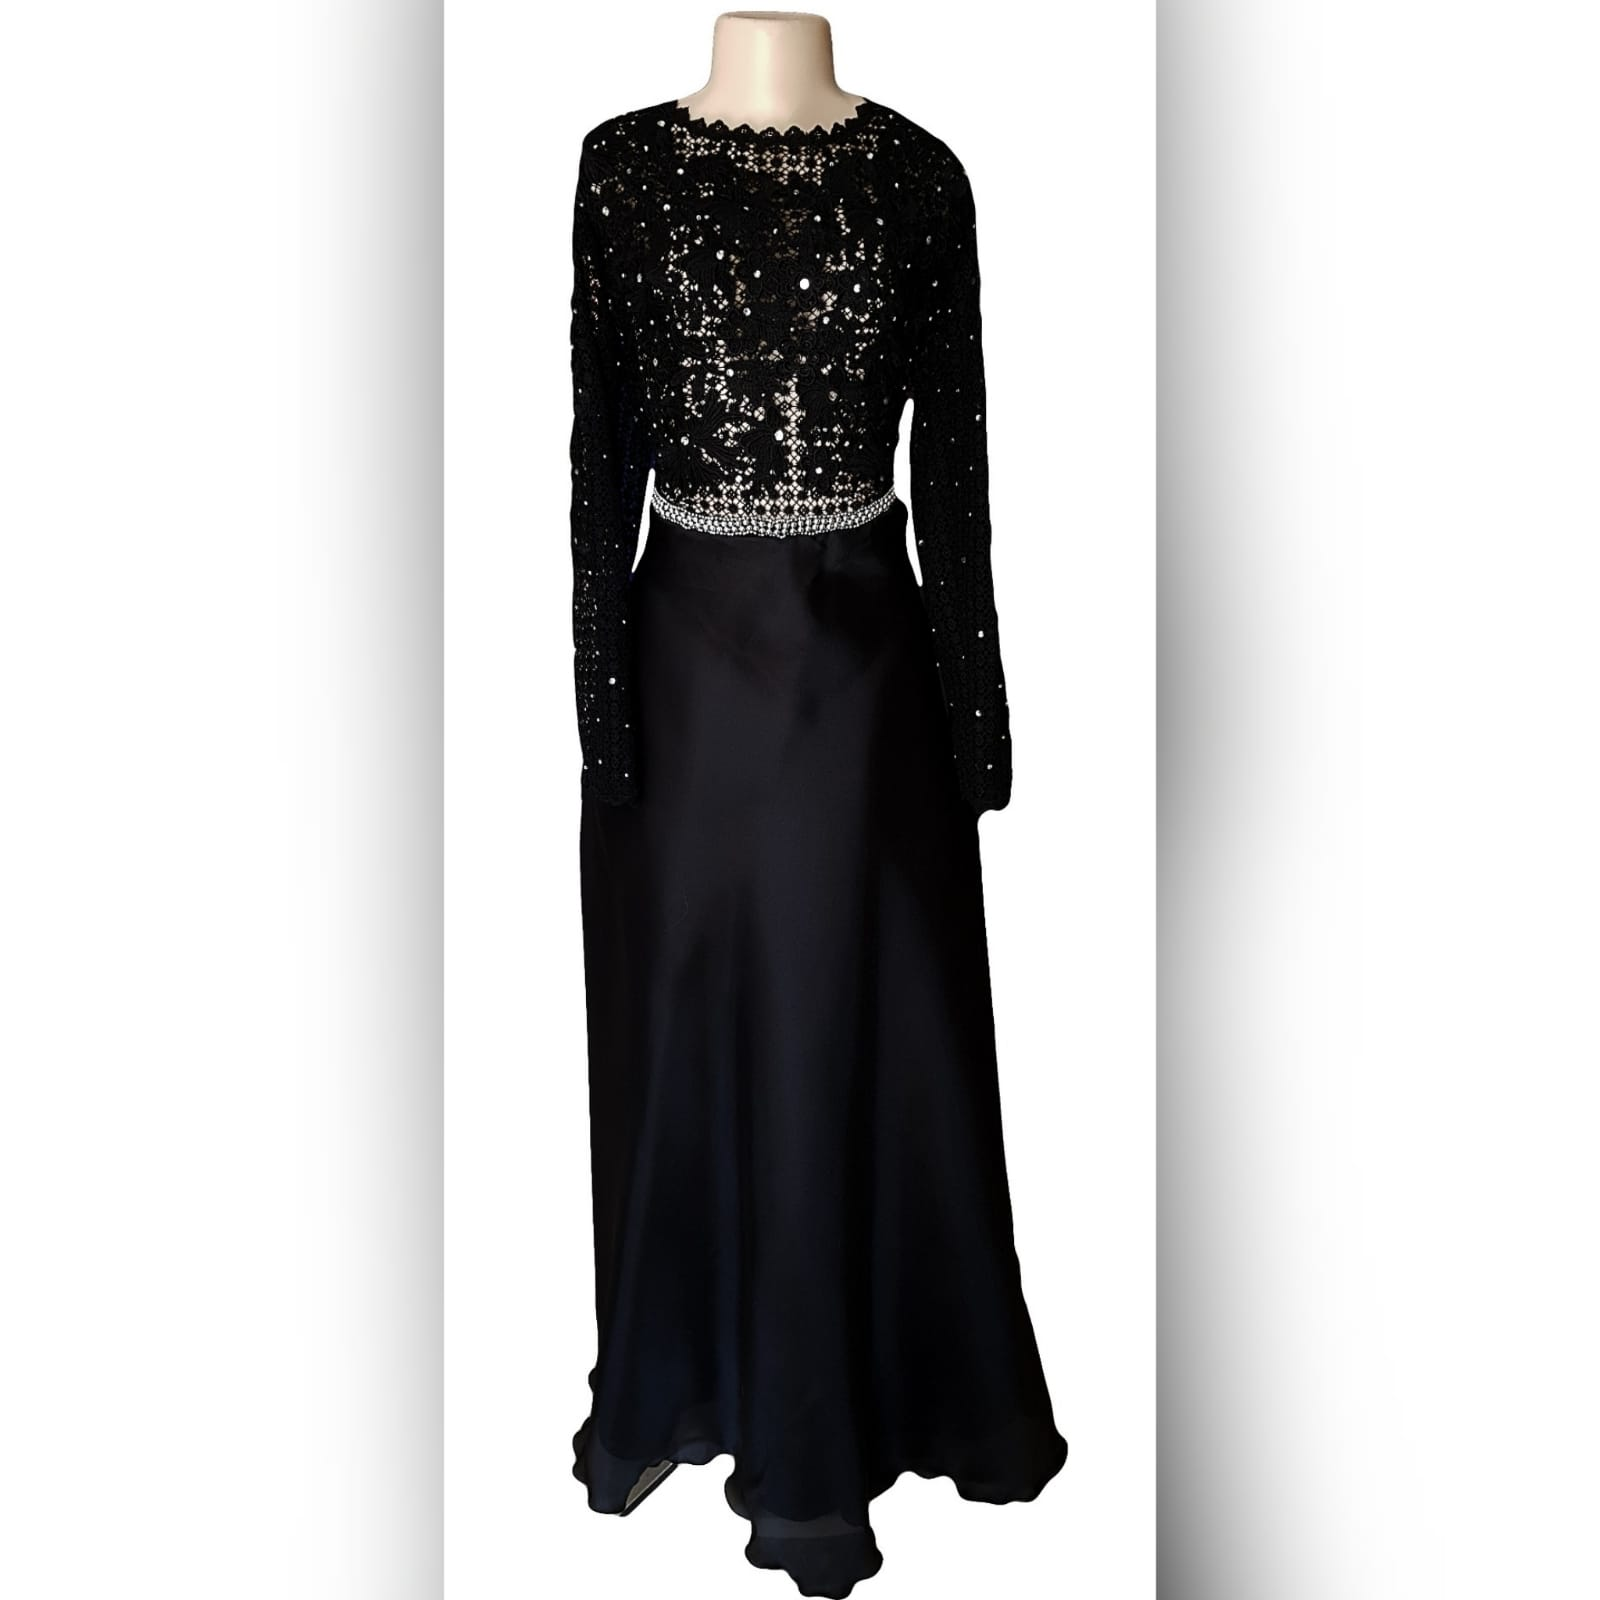 Black matric dress with a lace bodice 8 an elegant design created for a prom night. Black prom dress with a lace bodice with a slight sheer look detailed with silver beads and waist belt. Round neckline and long sleeves bottom flowy in a bridal organza